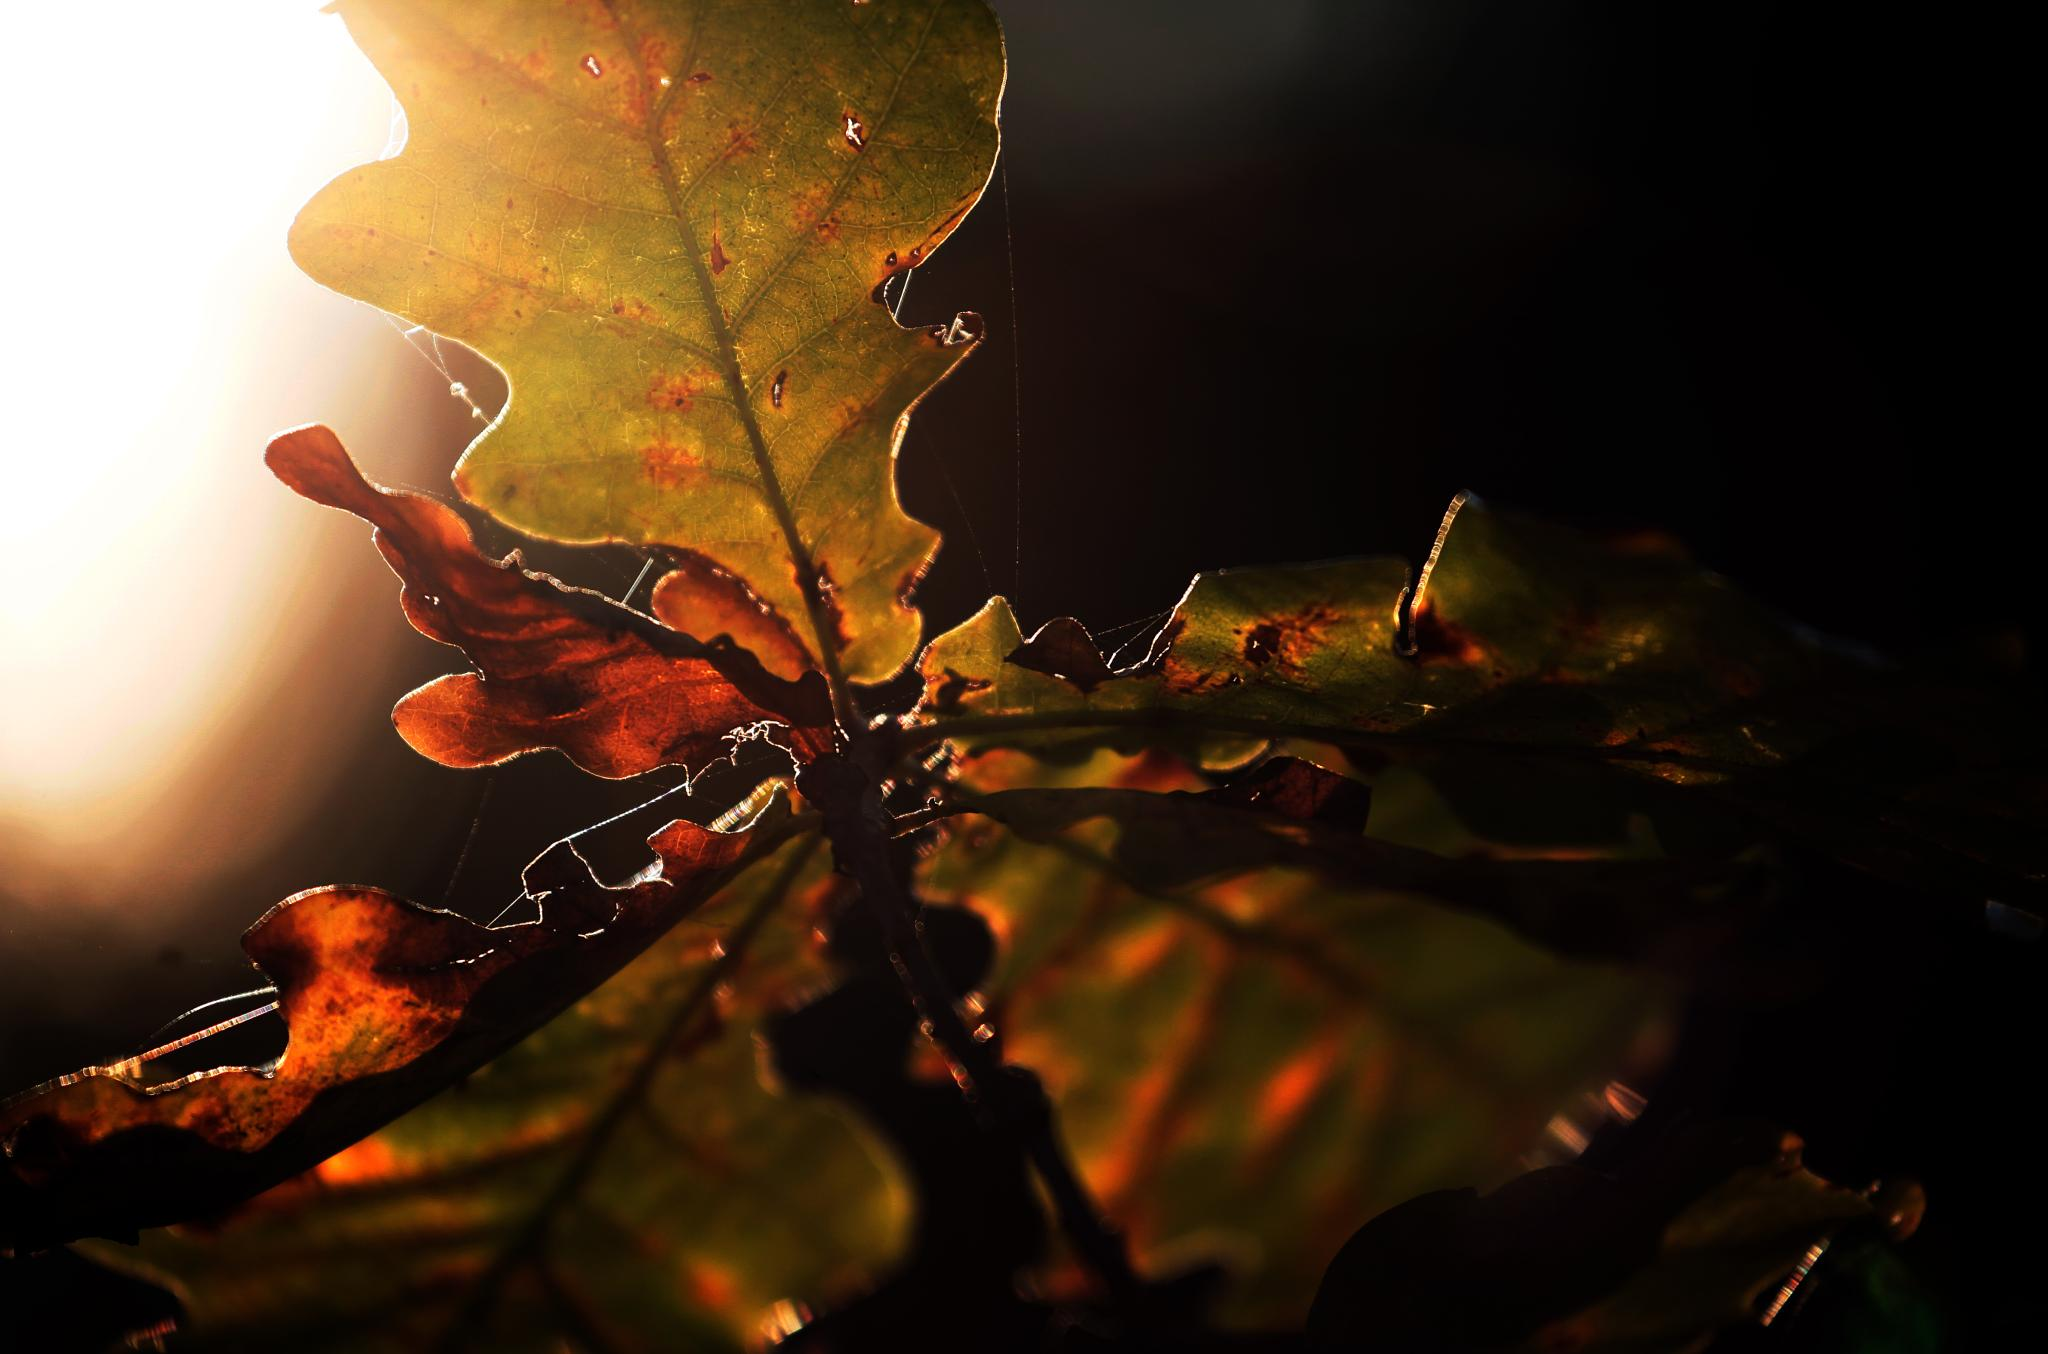 Leafs in sunset by thomas.artang